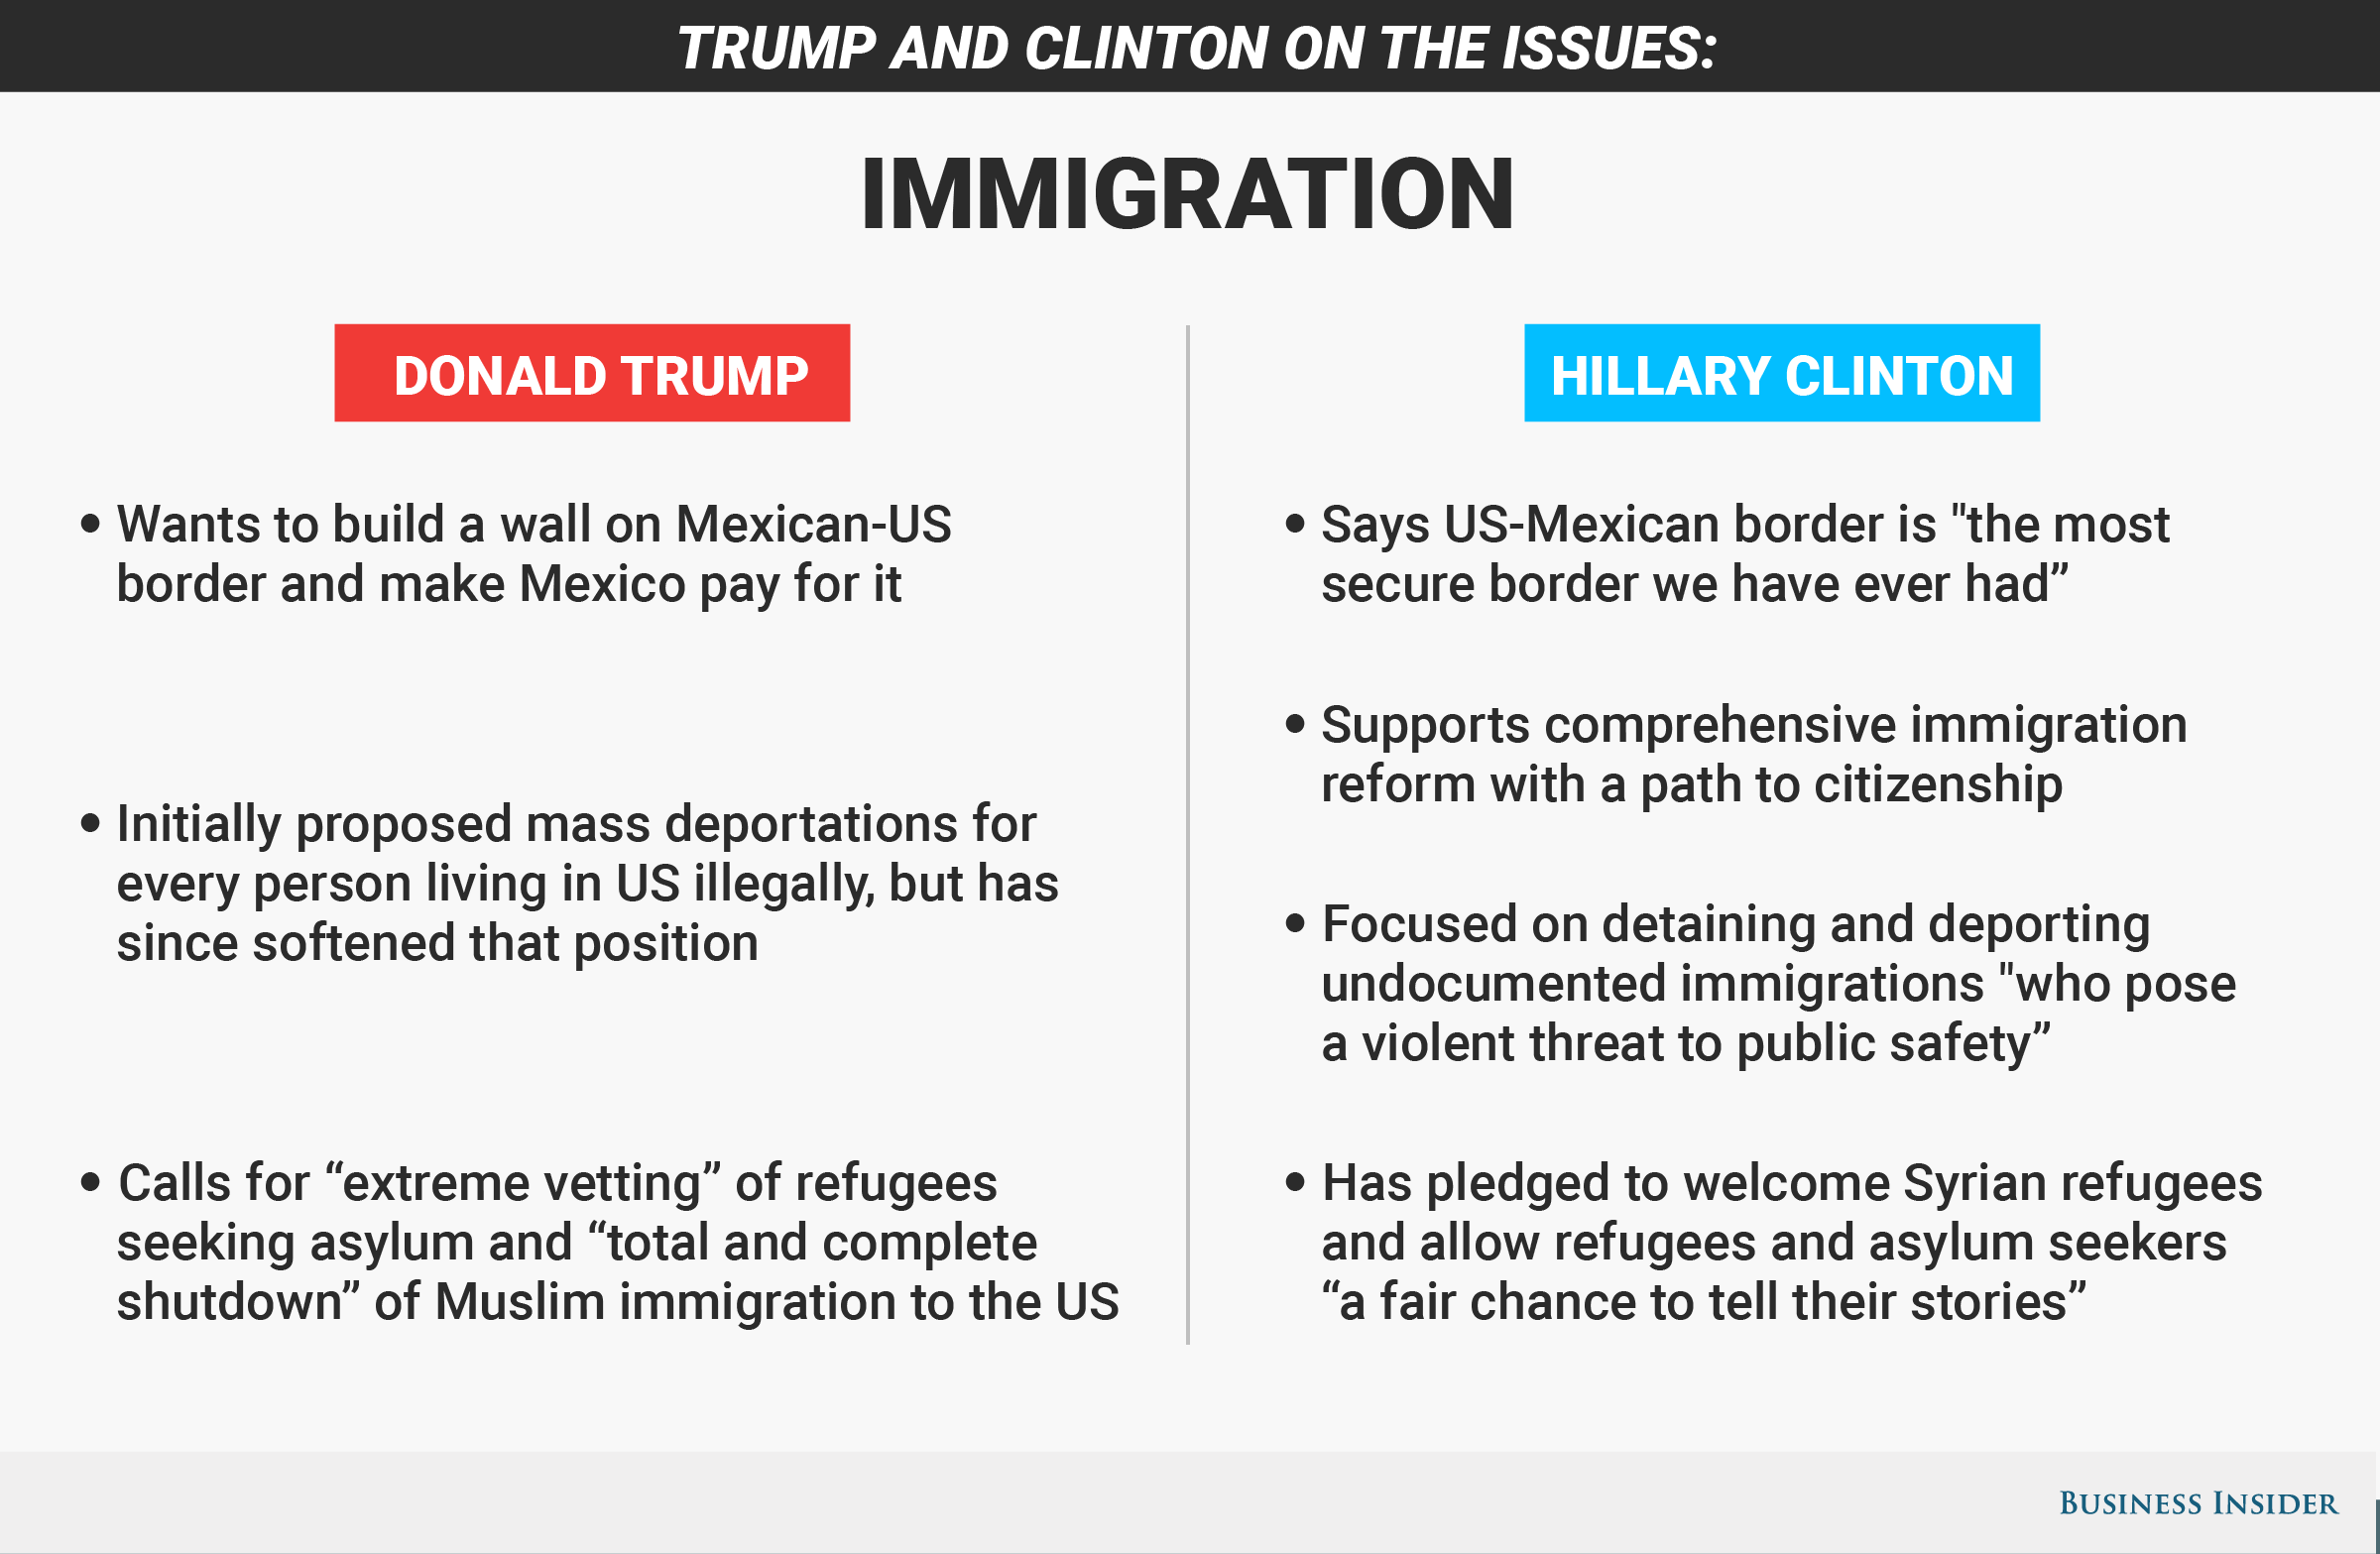 012 Immigration20graphic Essay Example Donald Unique Trump Prompt Topics Questions Full